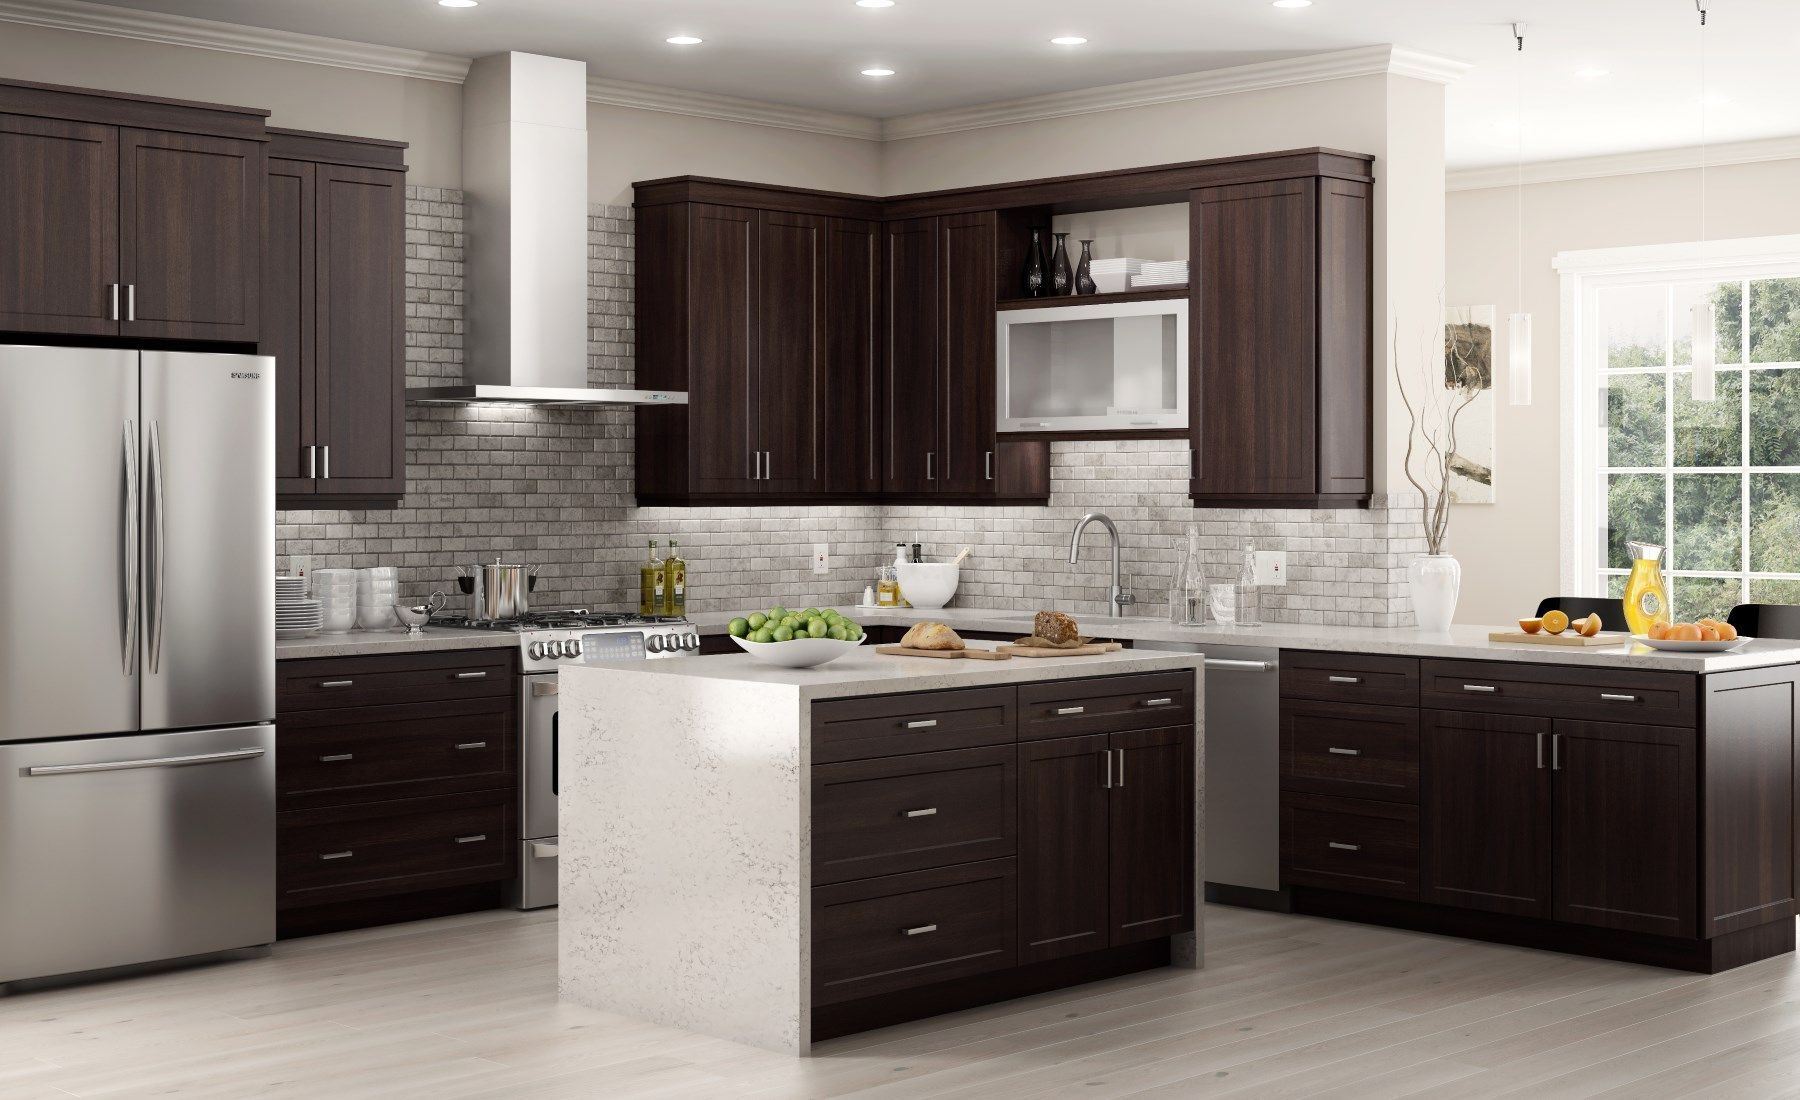 Gallery  Hampton Bay Designer Series  Designer Kitchen Cabinets Cool Kitchen Cabinets Home Depot Design Inspiration